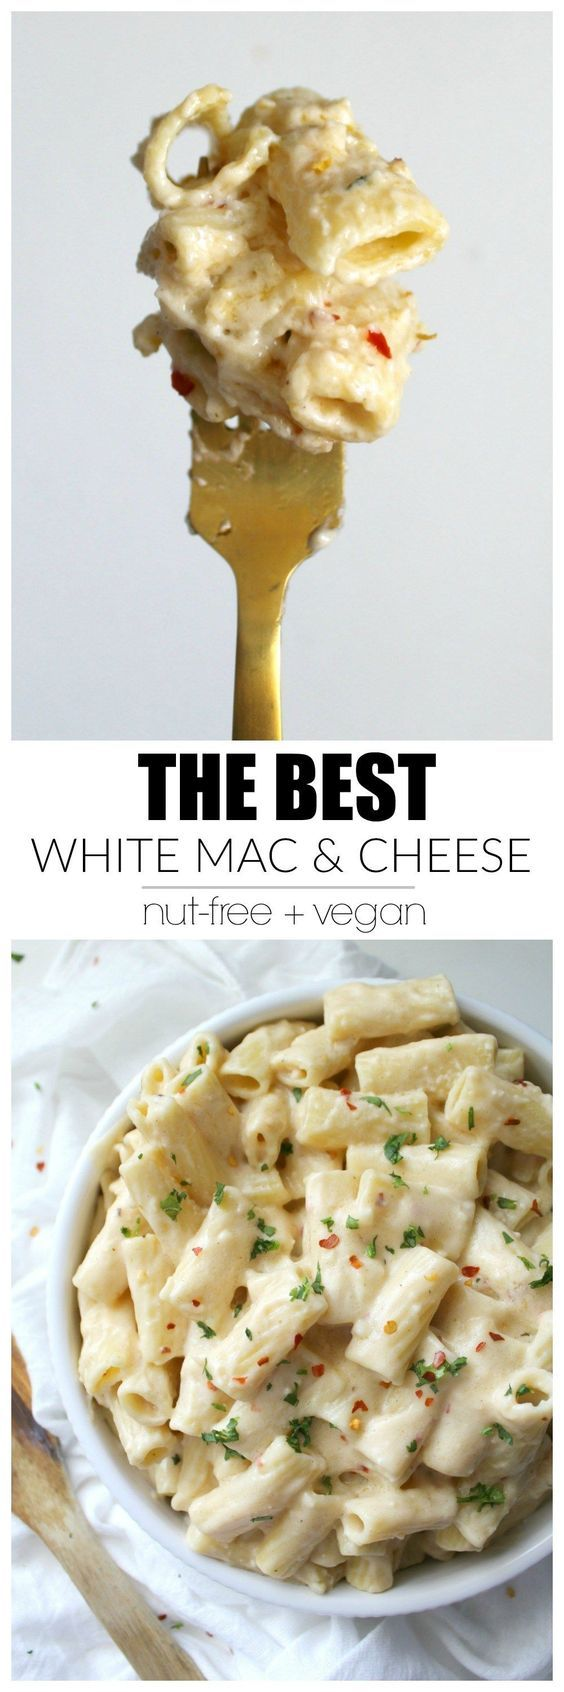 Creamy and comforting - this is hands down the Best Vegan White Mac and Cheese | ThisSavoryVegan.com